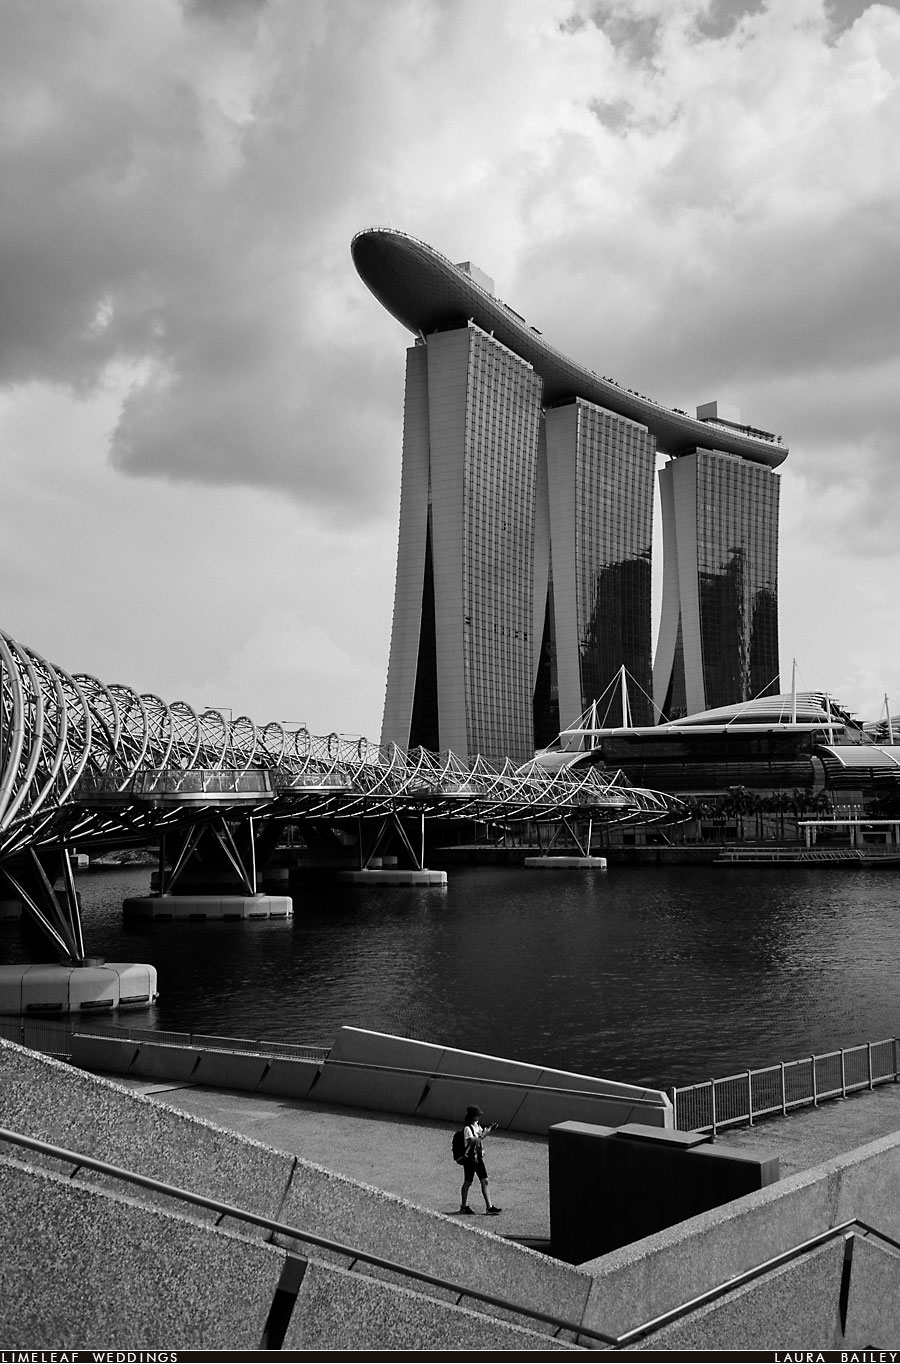 The Marina Bay Sands (MBS) Hotel in front of the double helix bridge in Singapore